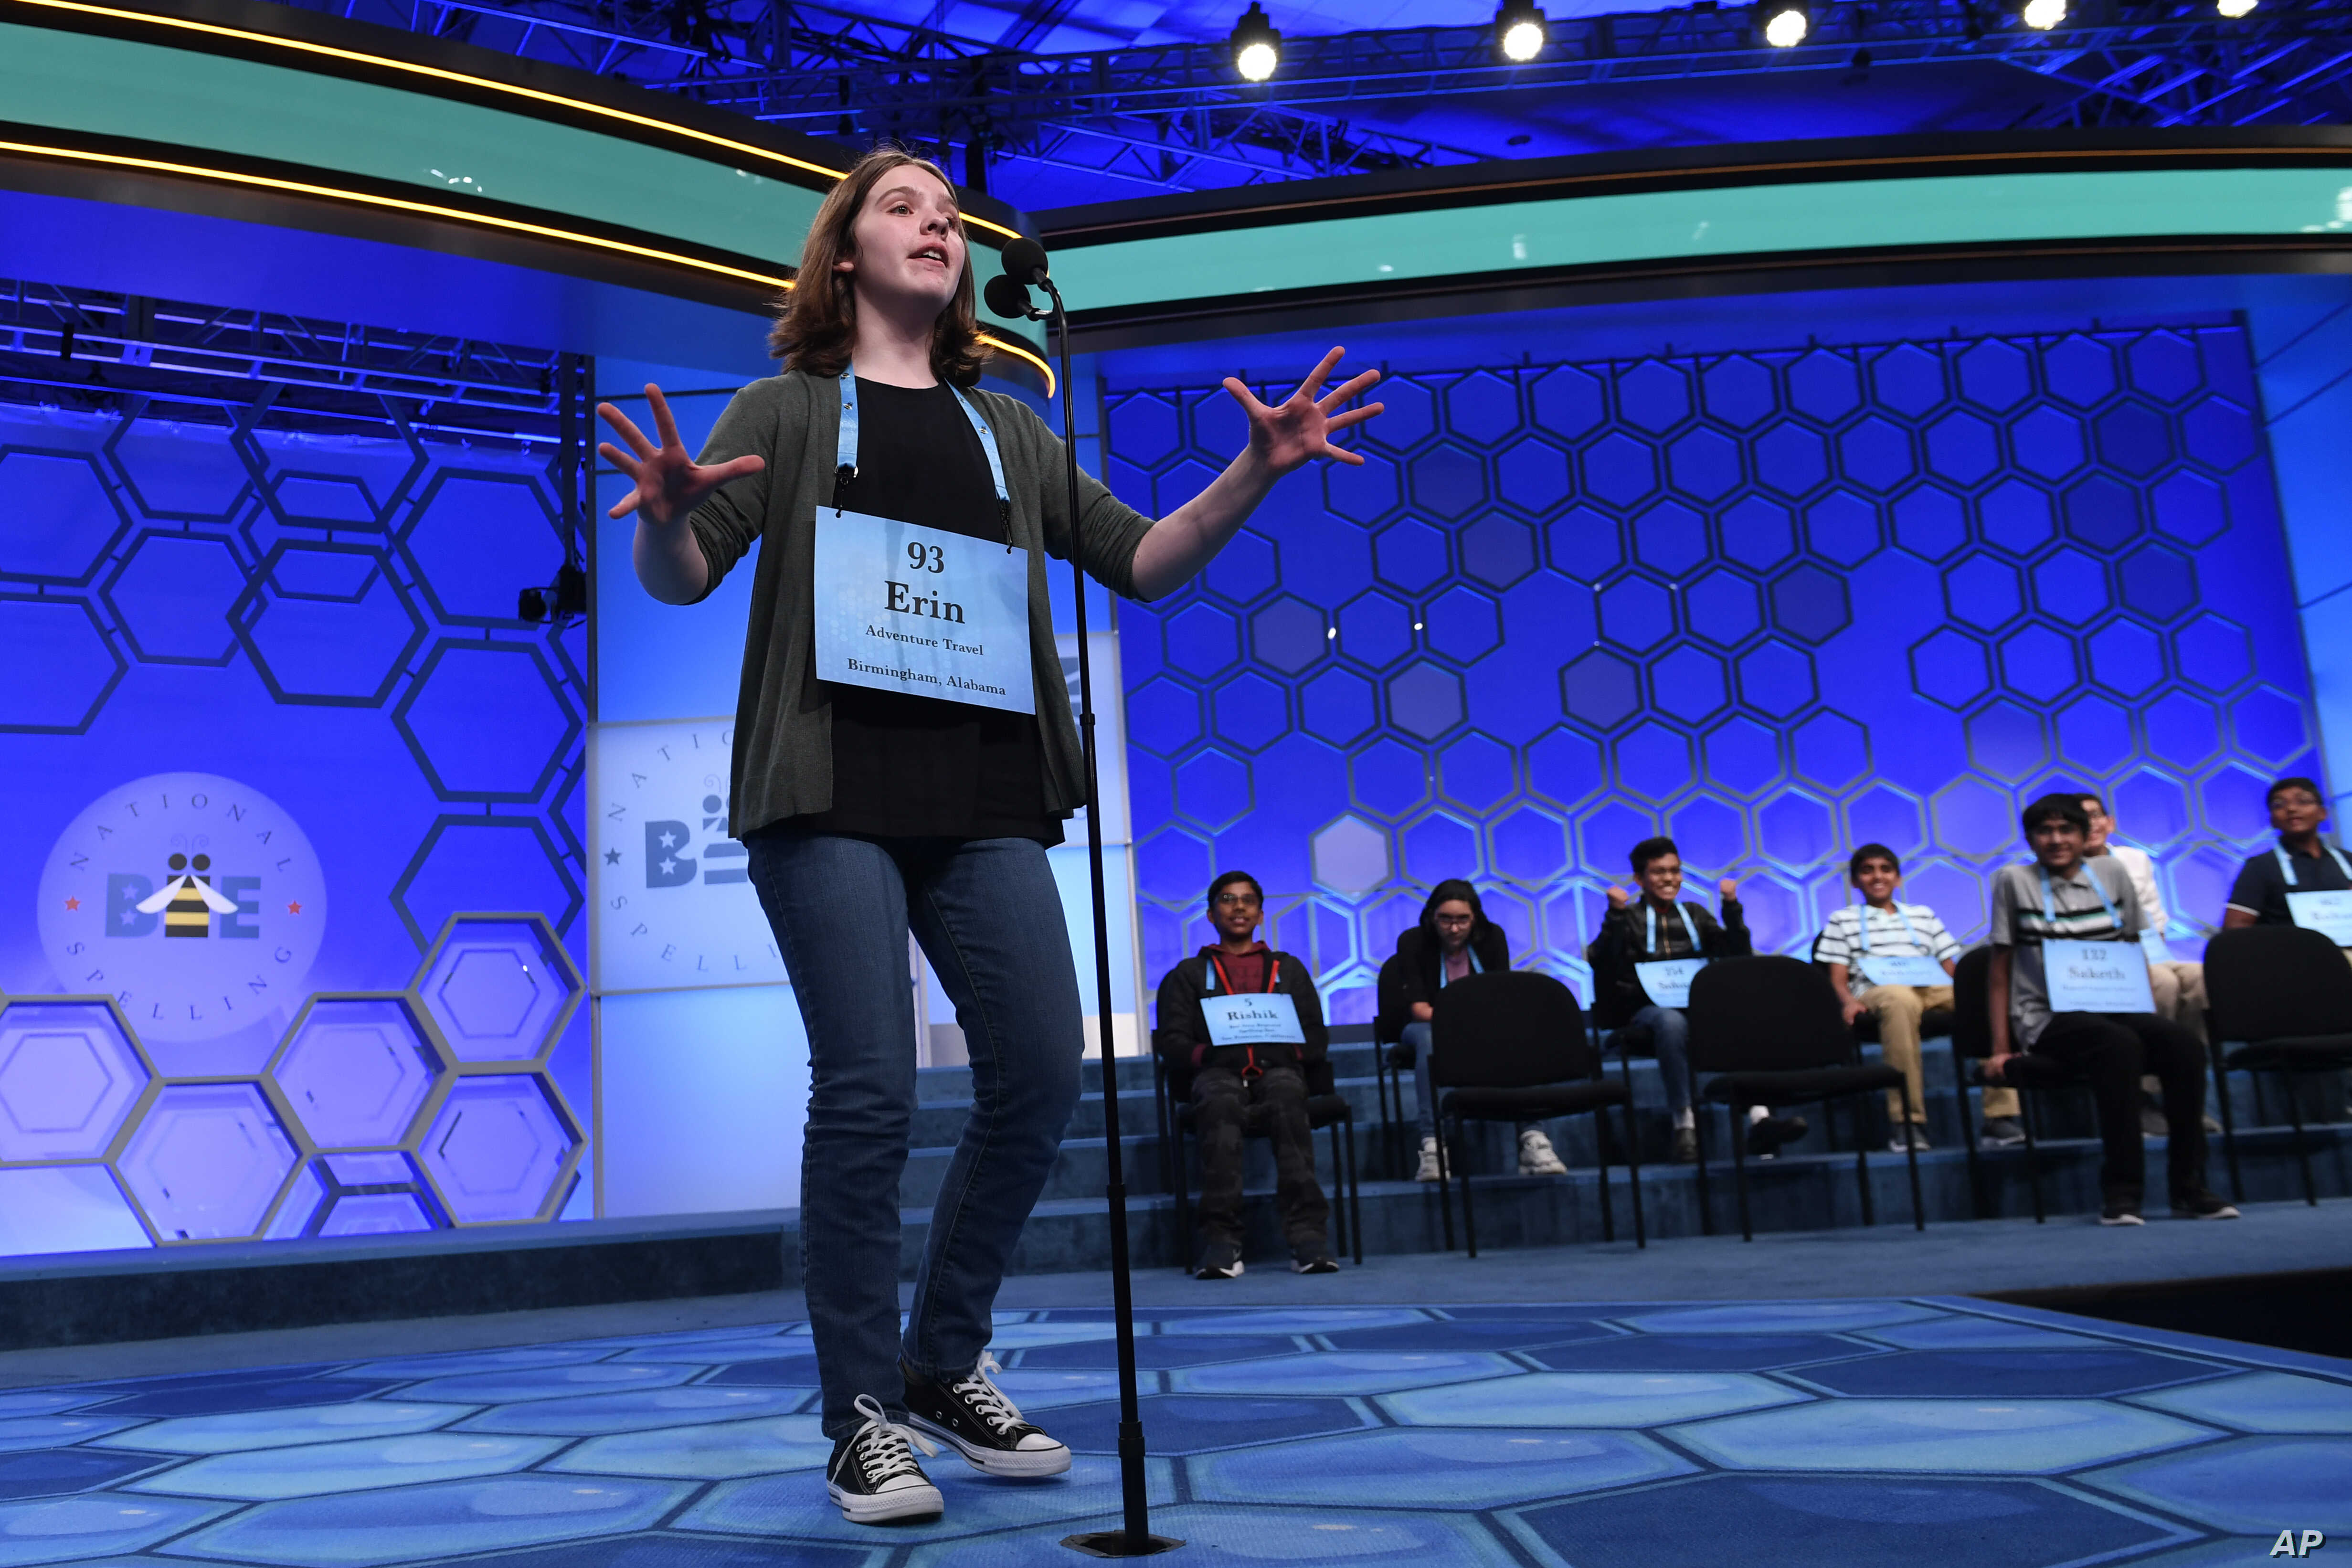 Erin Howard, 14, of Huntsville, Ala., gets excited after receiving her last word to spell as she competes in the finals of the 2019 Scripps National Spelling Bee in Oxon Hill, Md., May 30, 2019.